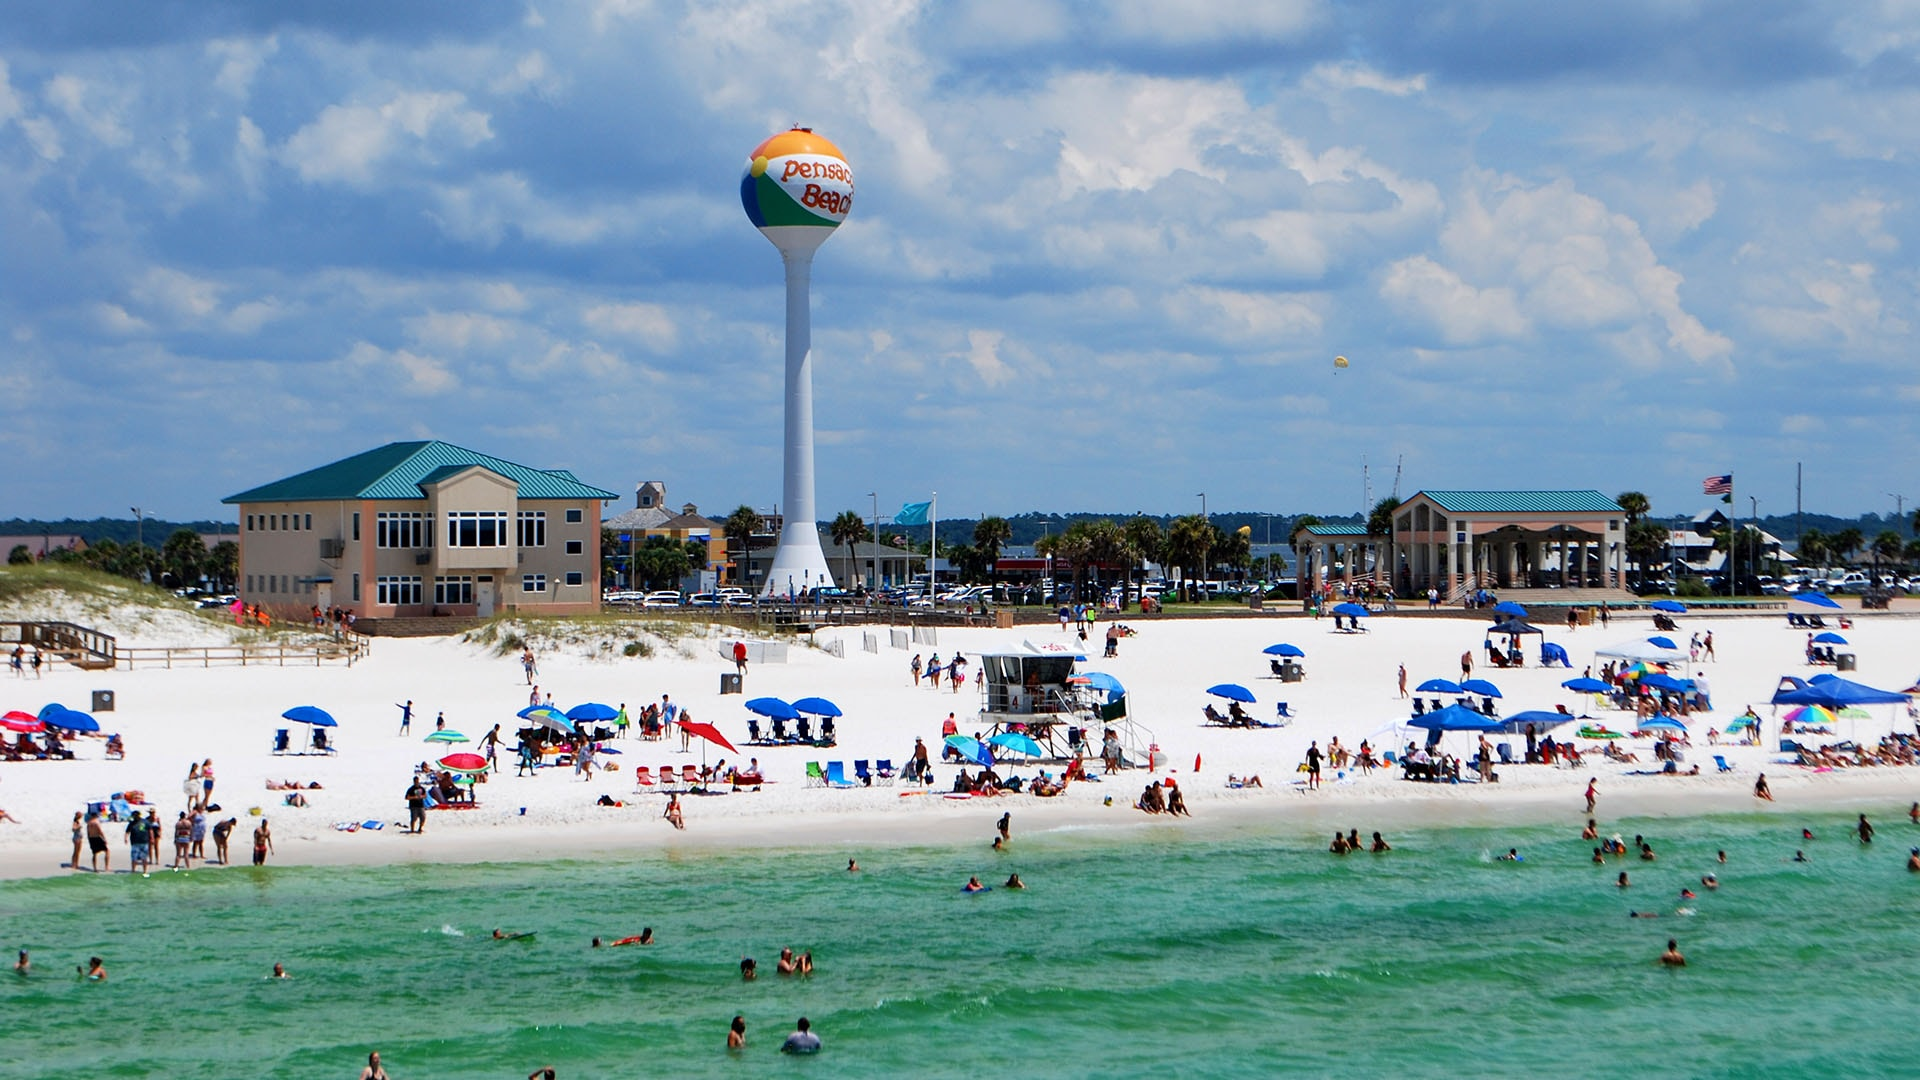 The beach ball water tower is a symbol of Pensacola Beach.